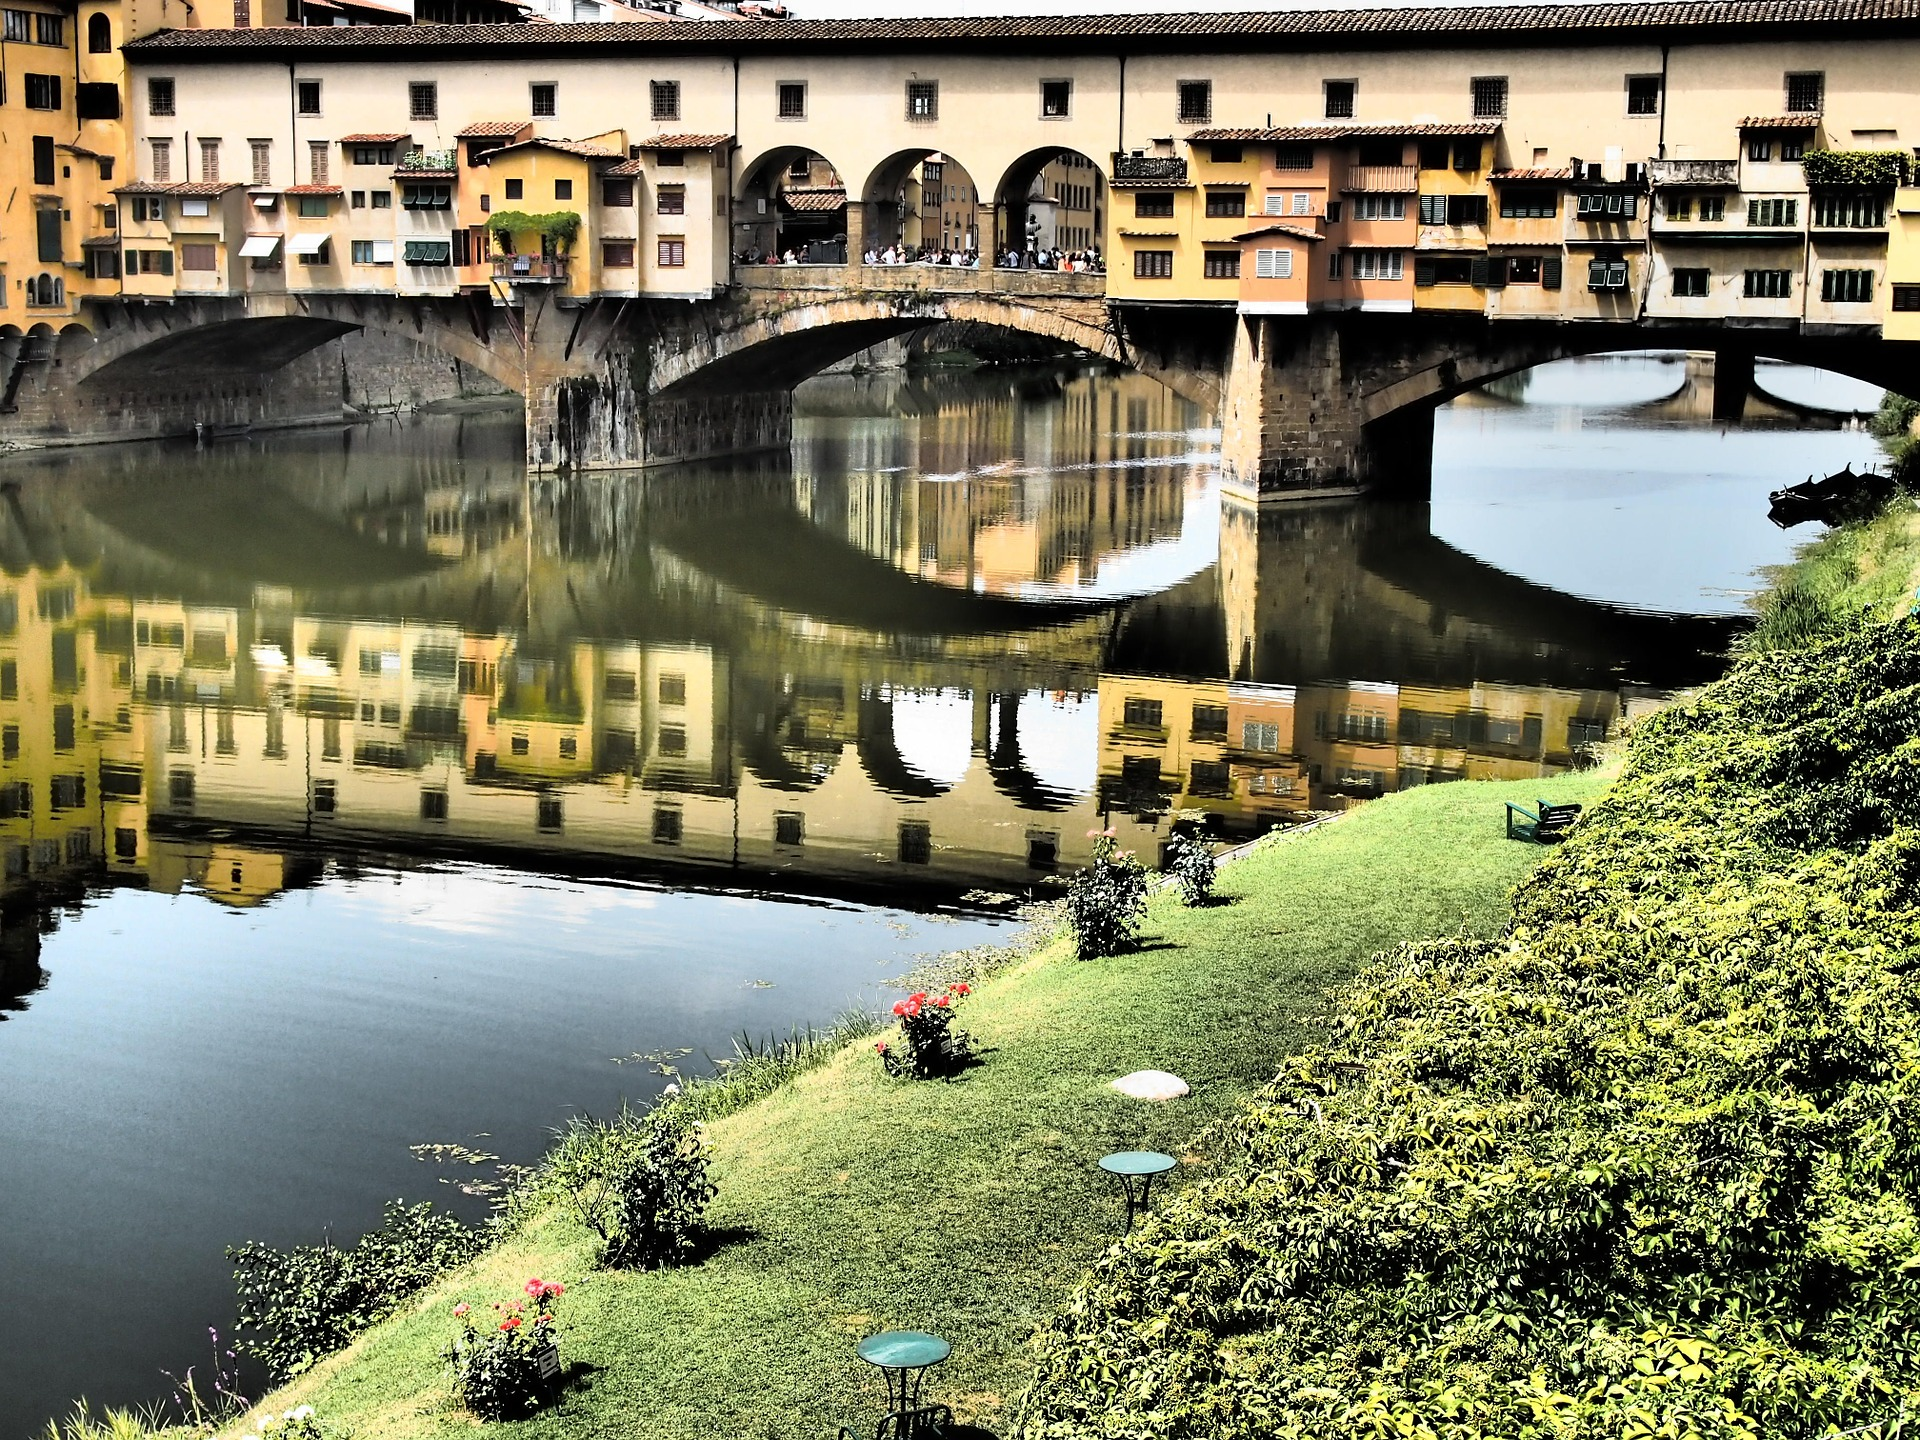 the Arno river and Ponte Vecchio bridge